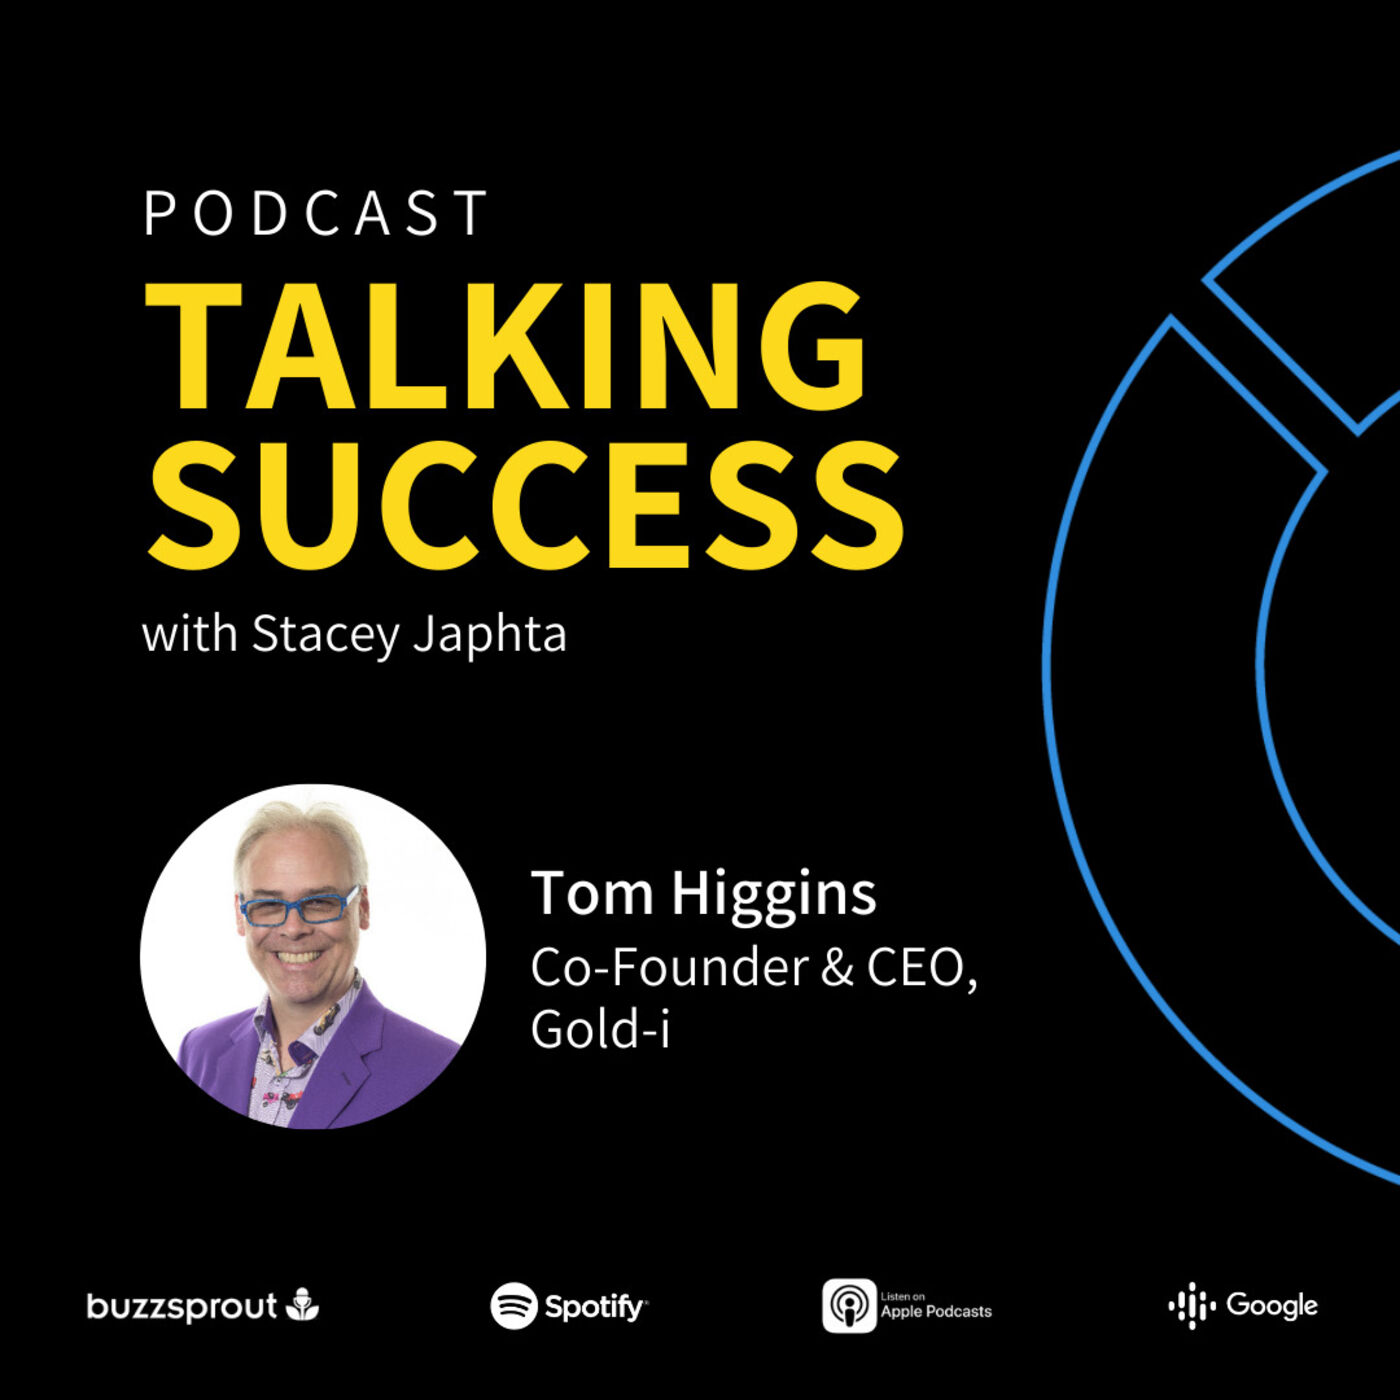 Tom Higgins, CEO & Founder of Gold-i - All things FinTech, how to get through ups and downs in the market, & how to validate a good business idea